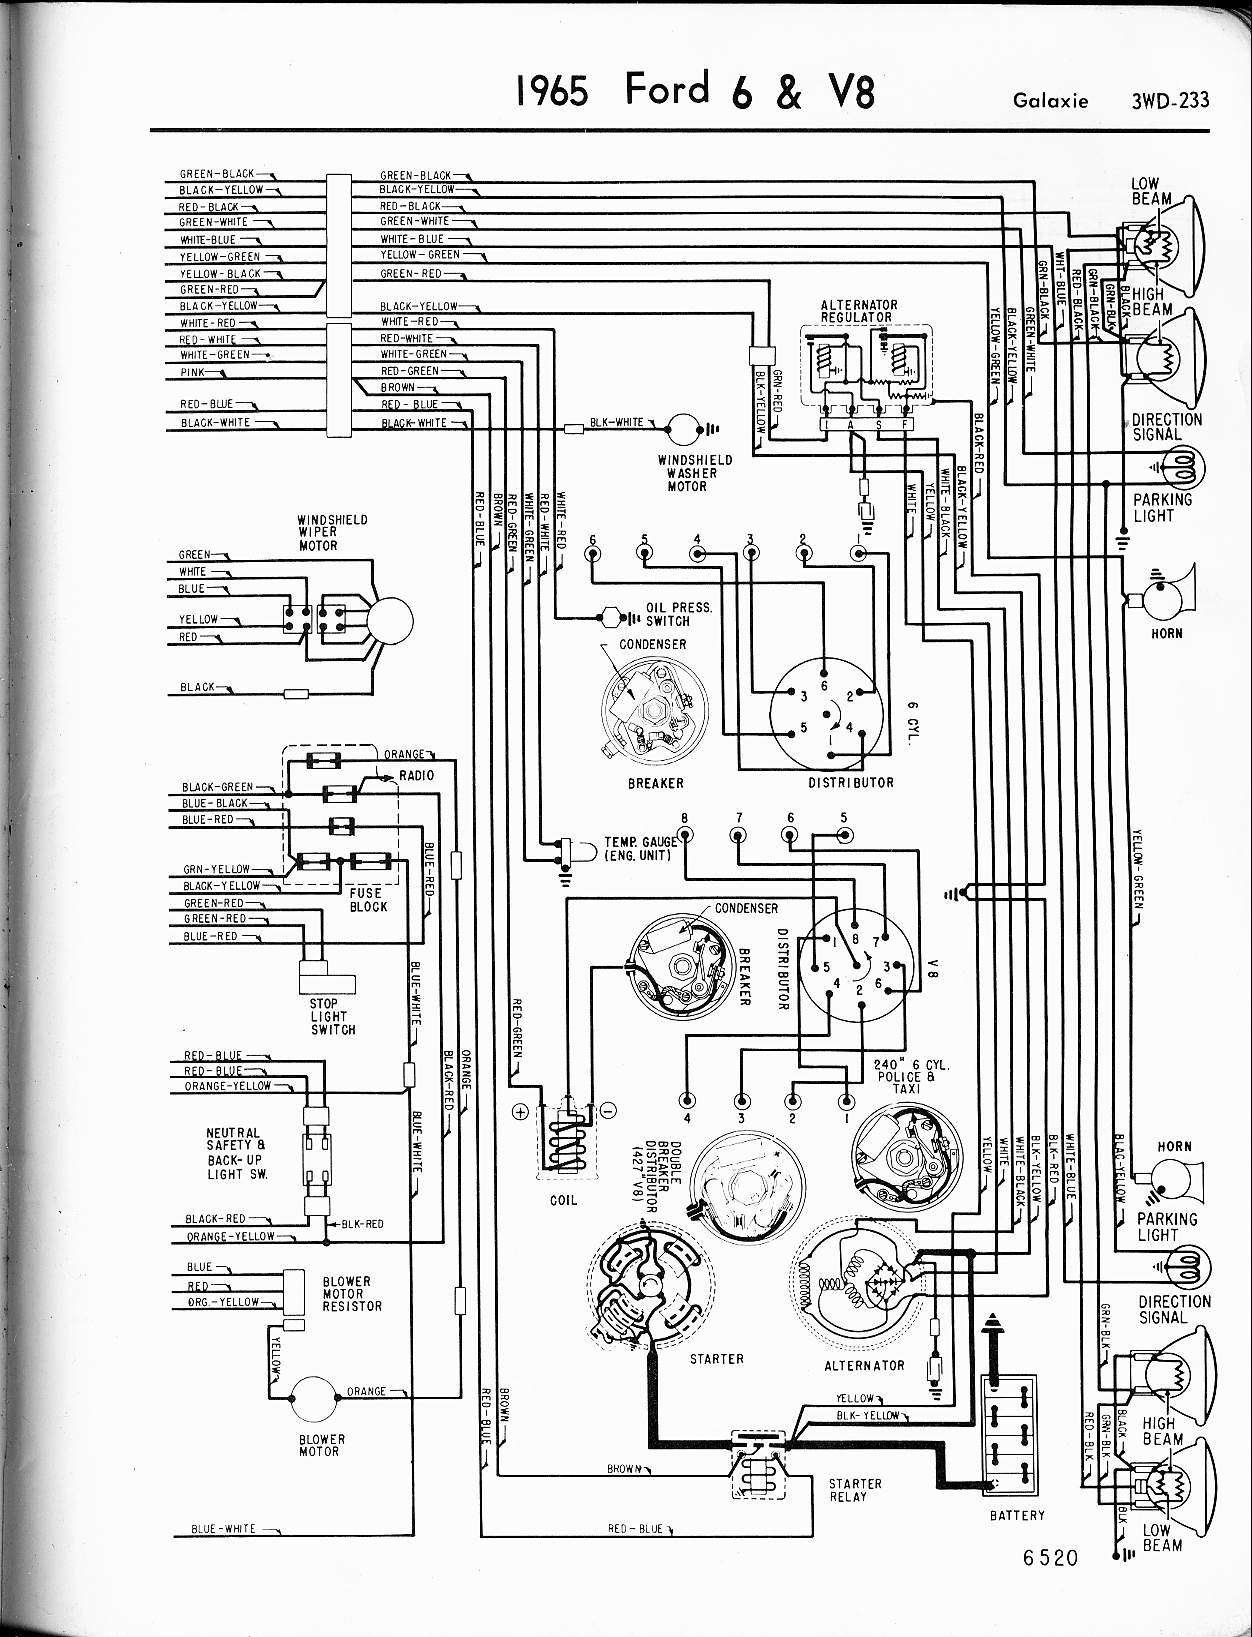 66 gmc truck wiring diagram schematic diagram  66 gmc truck wiring for v6 #5